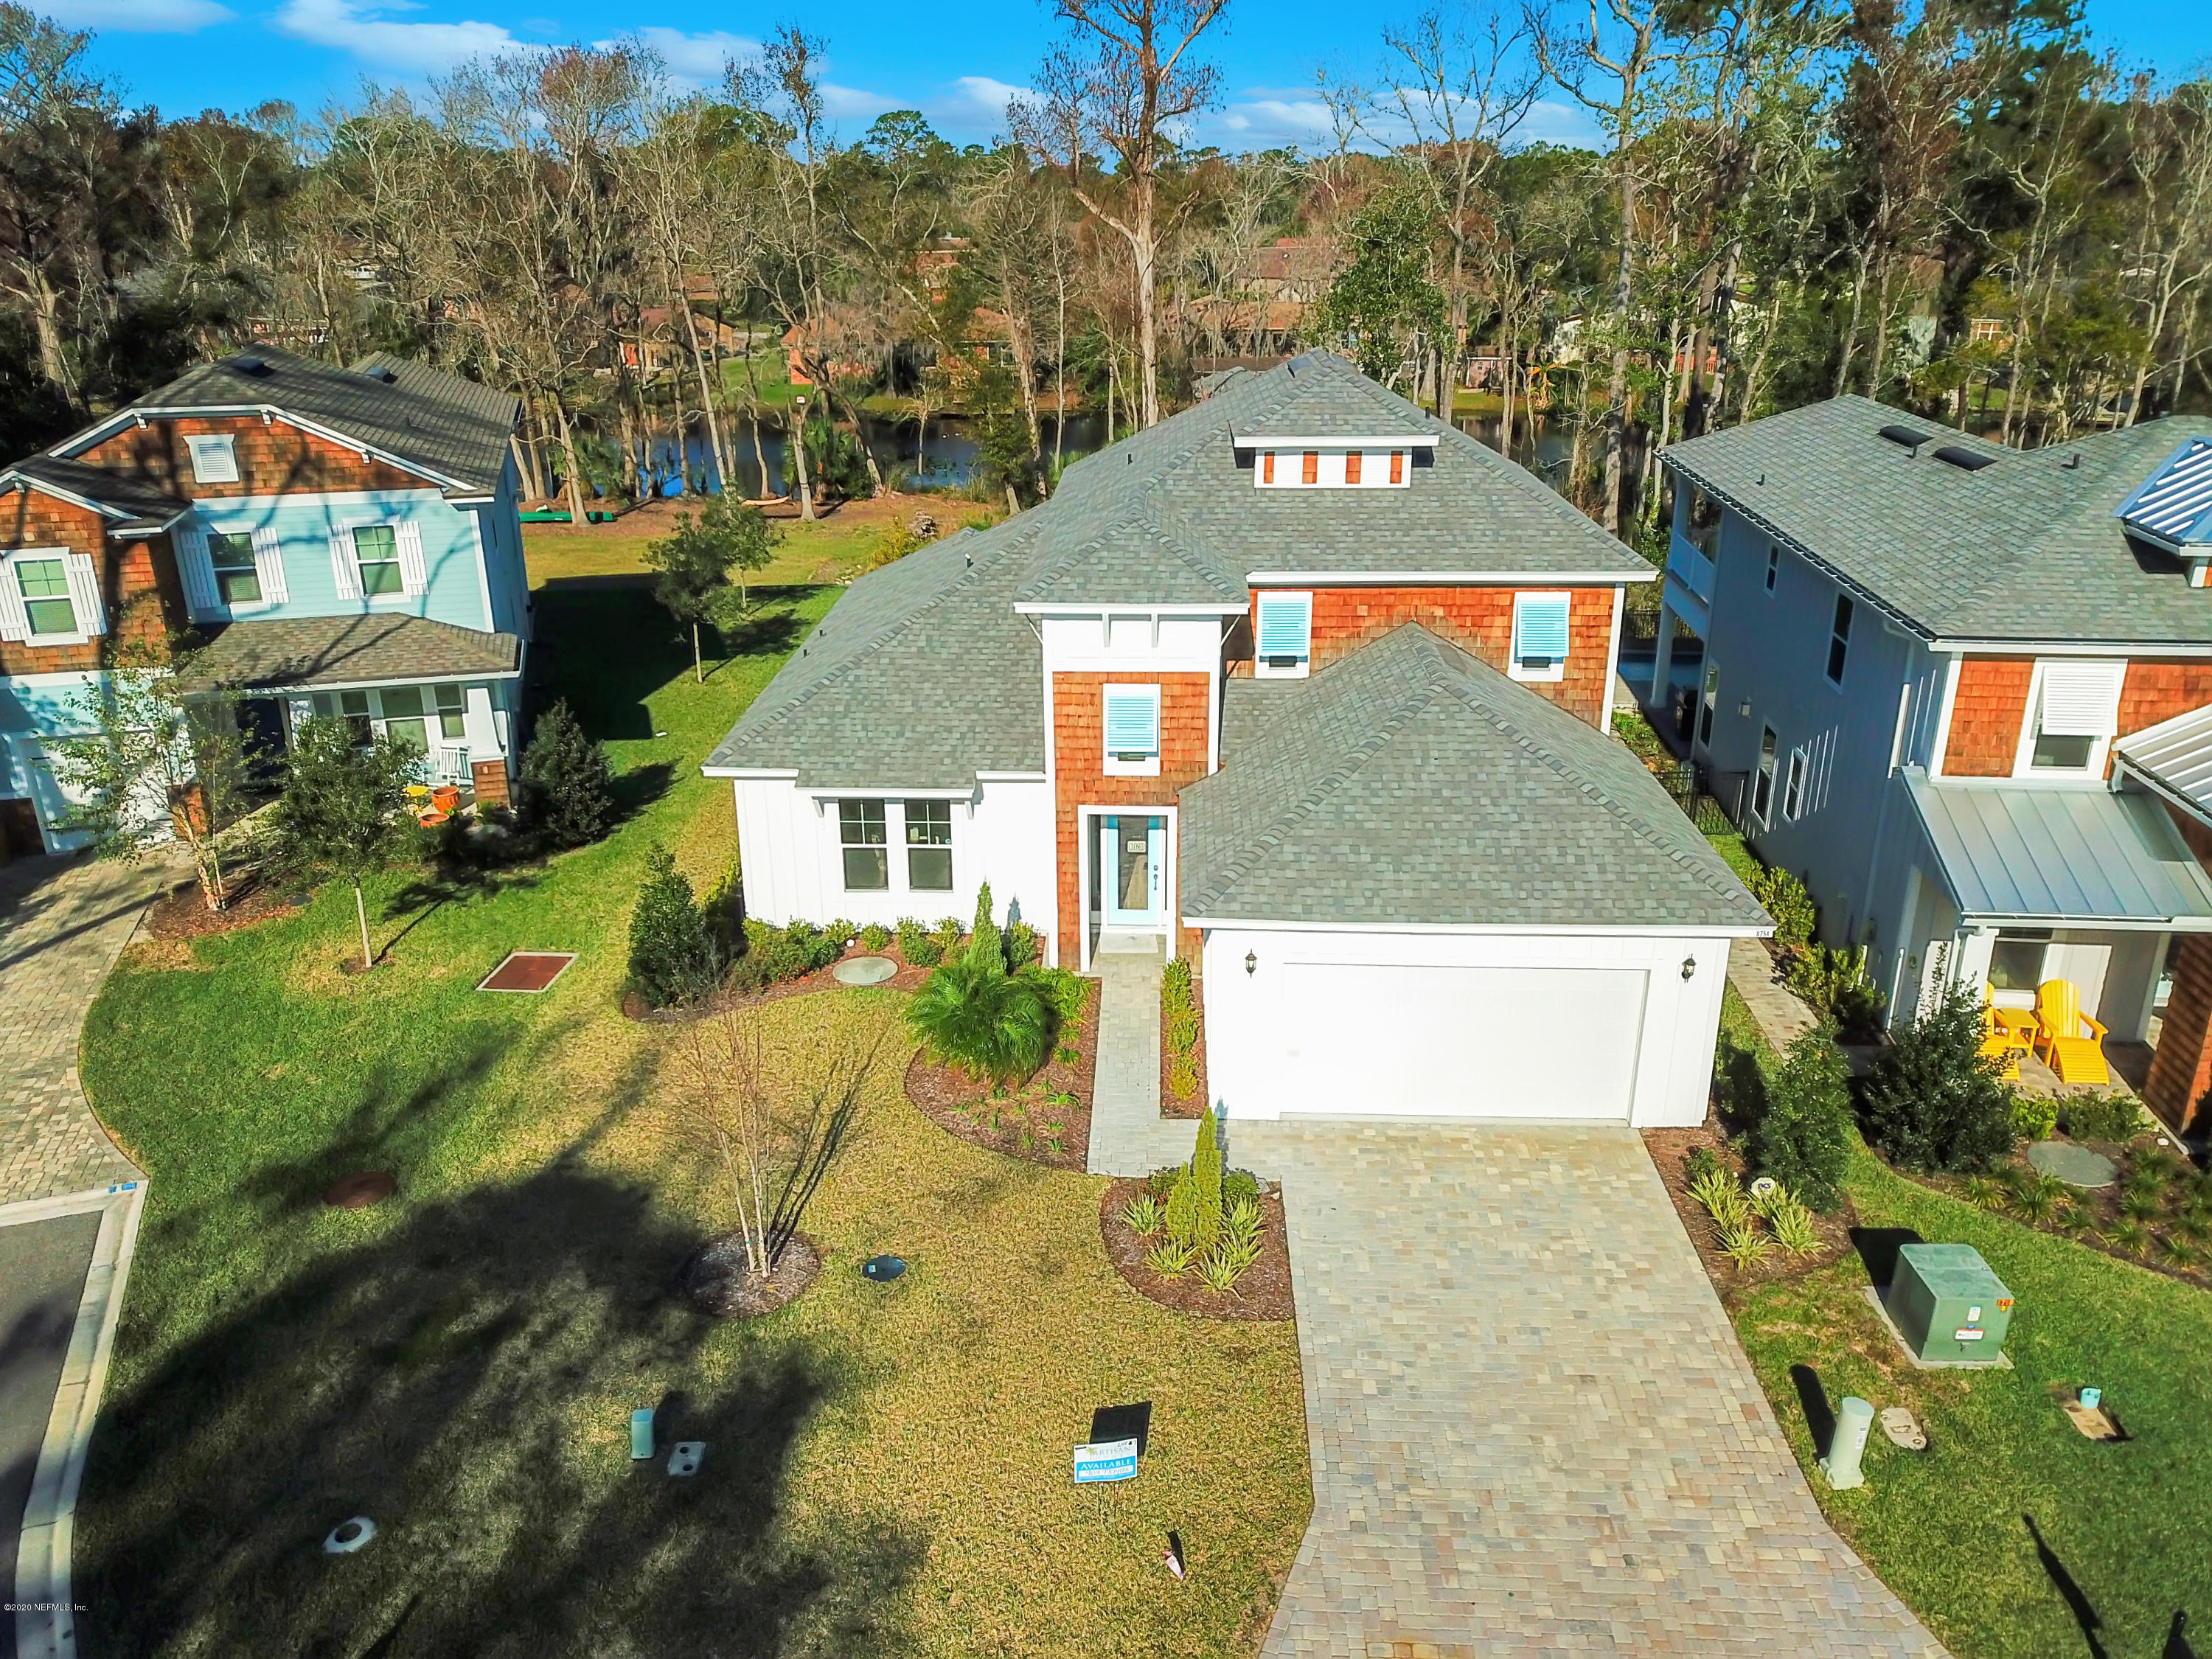 8754 ANGLERS COVE, JACKSONVILLE, FLORIDA 32217, 4 Bedrooms Bedrooms, ,3 BathroomsBathrooms,Residential,For sale,ANGLERS COVE,954127